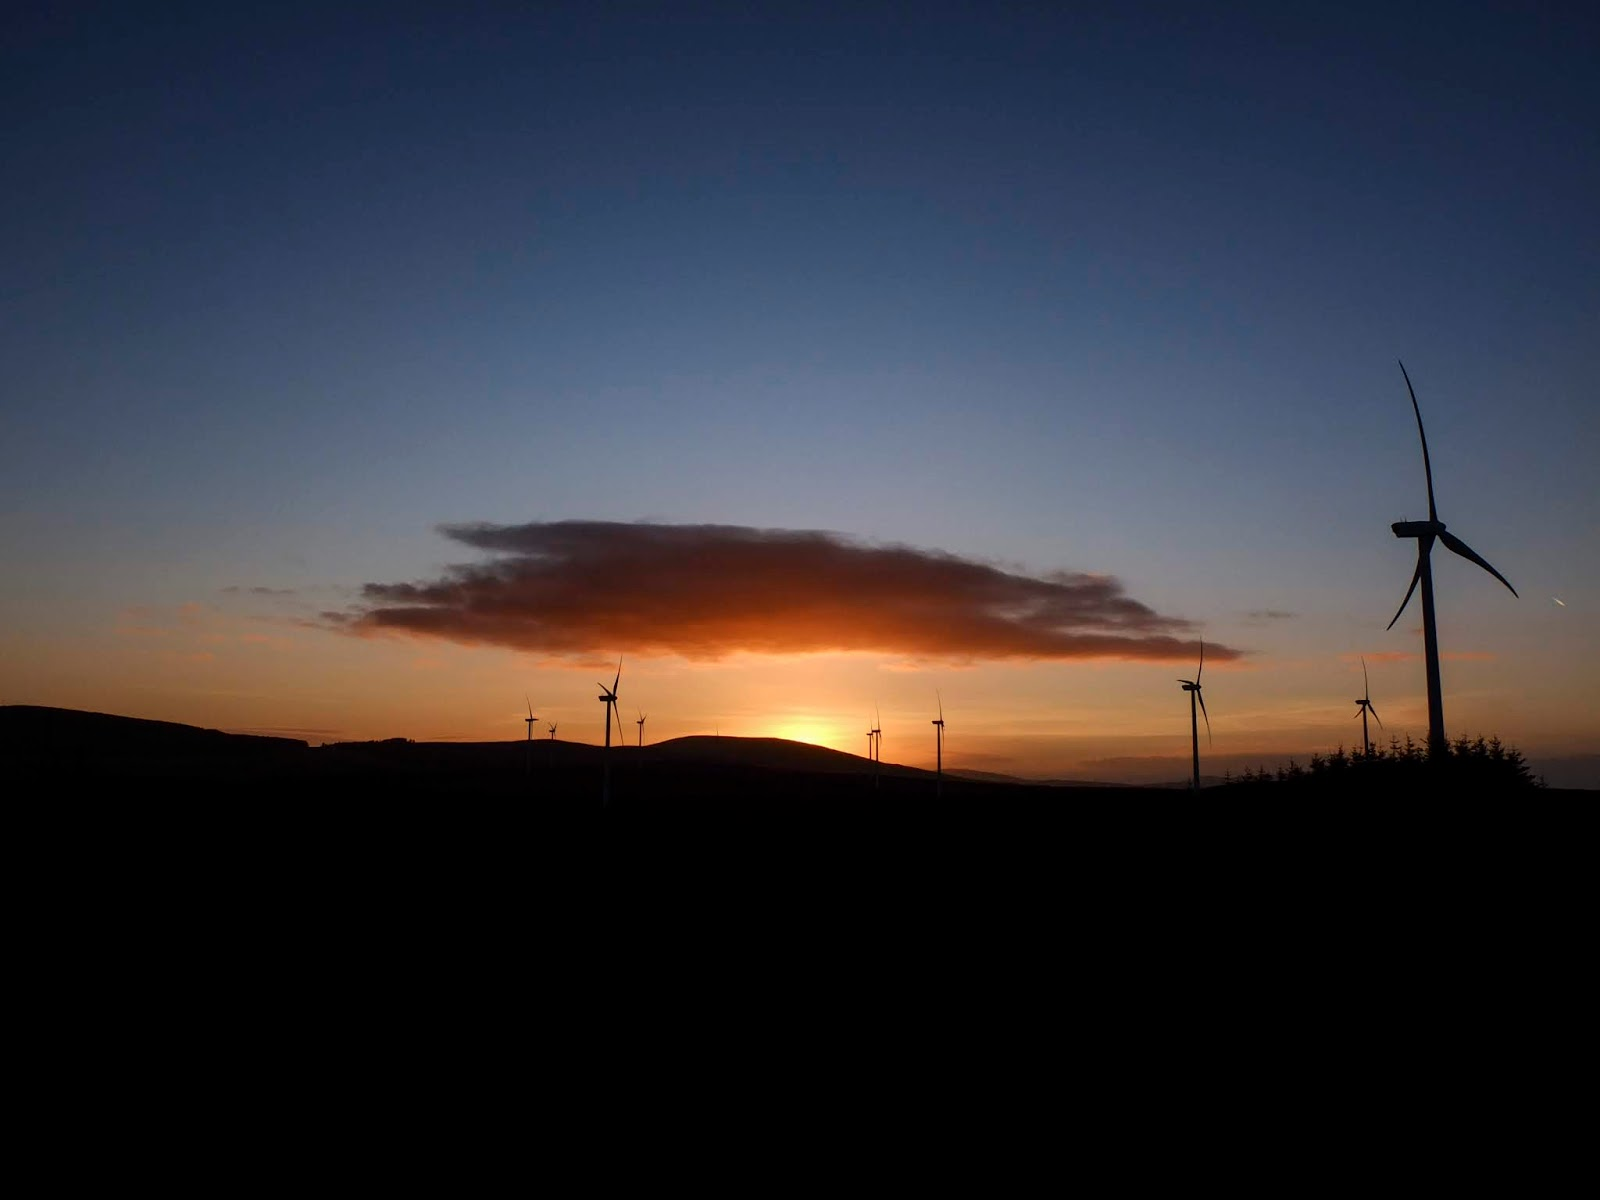 A North County Cork windmill farm sunset.